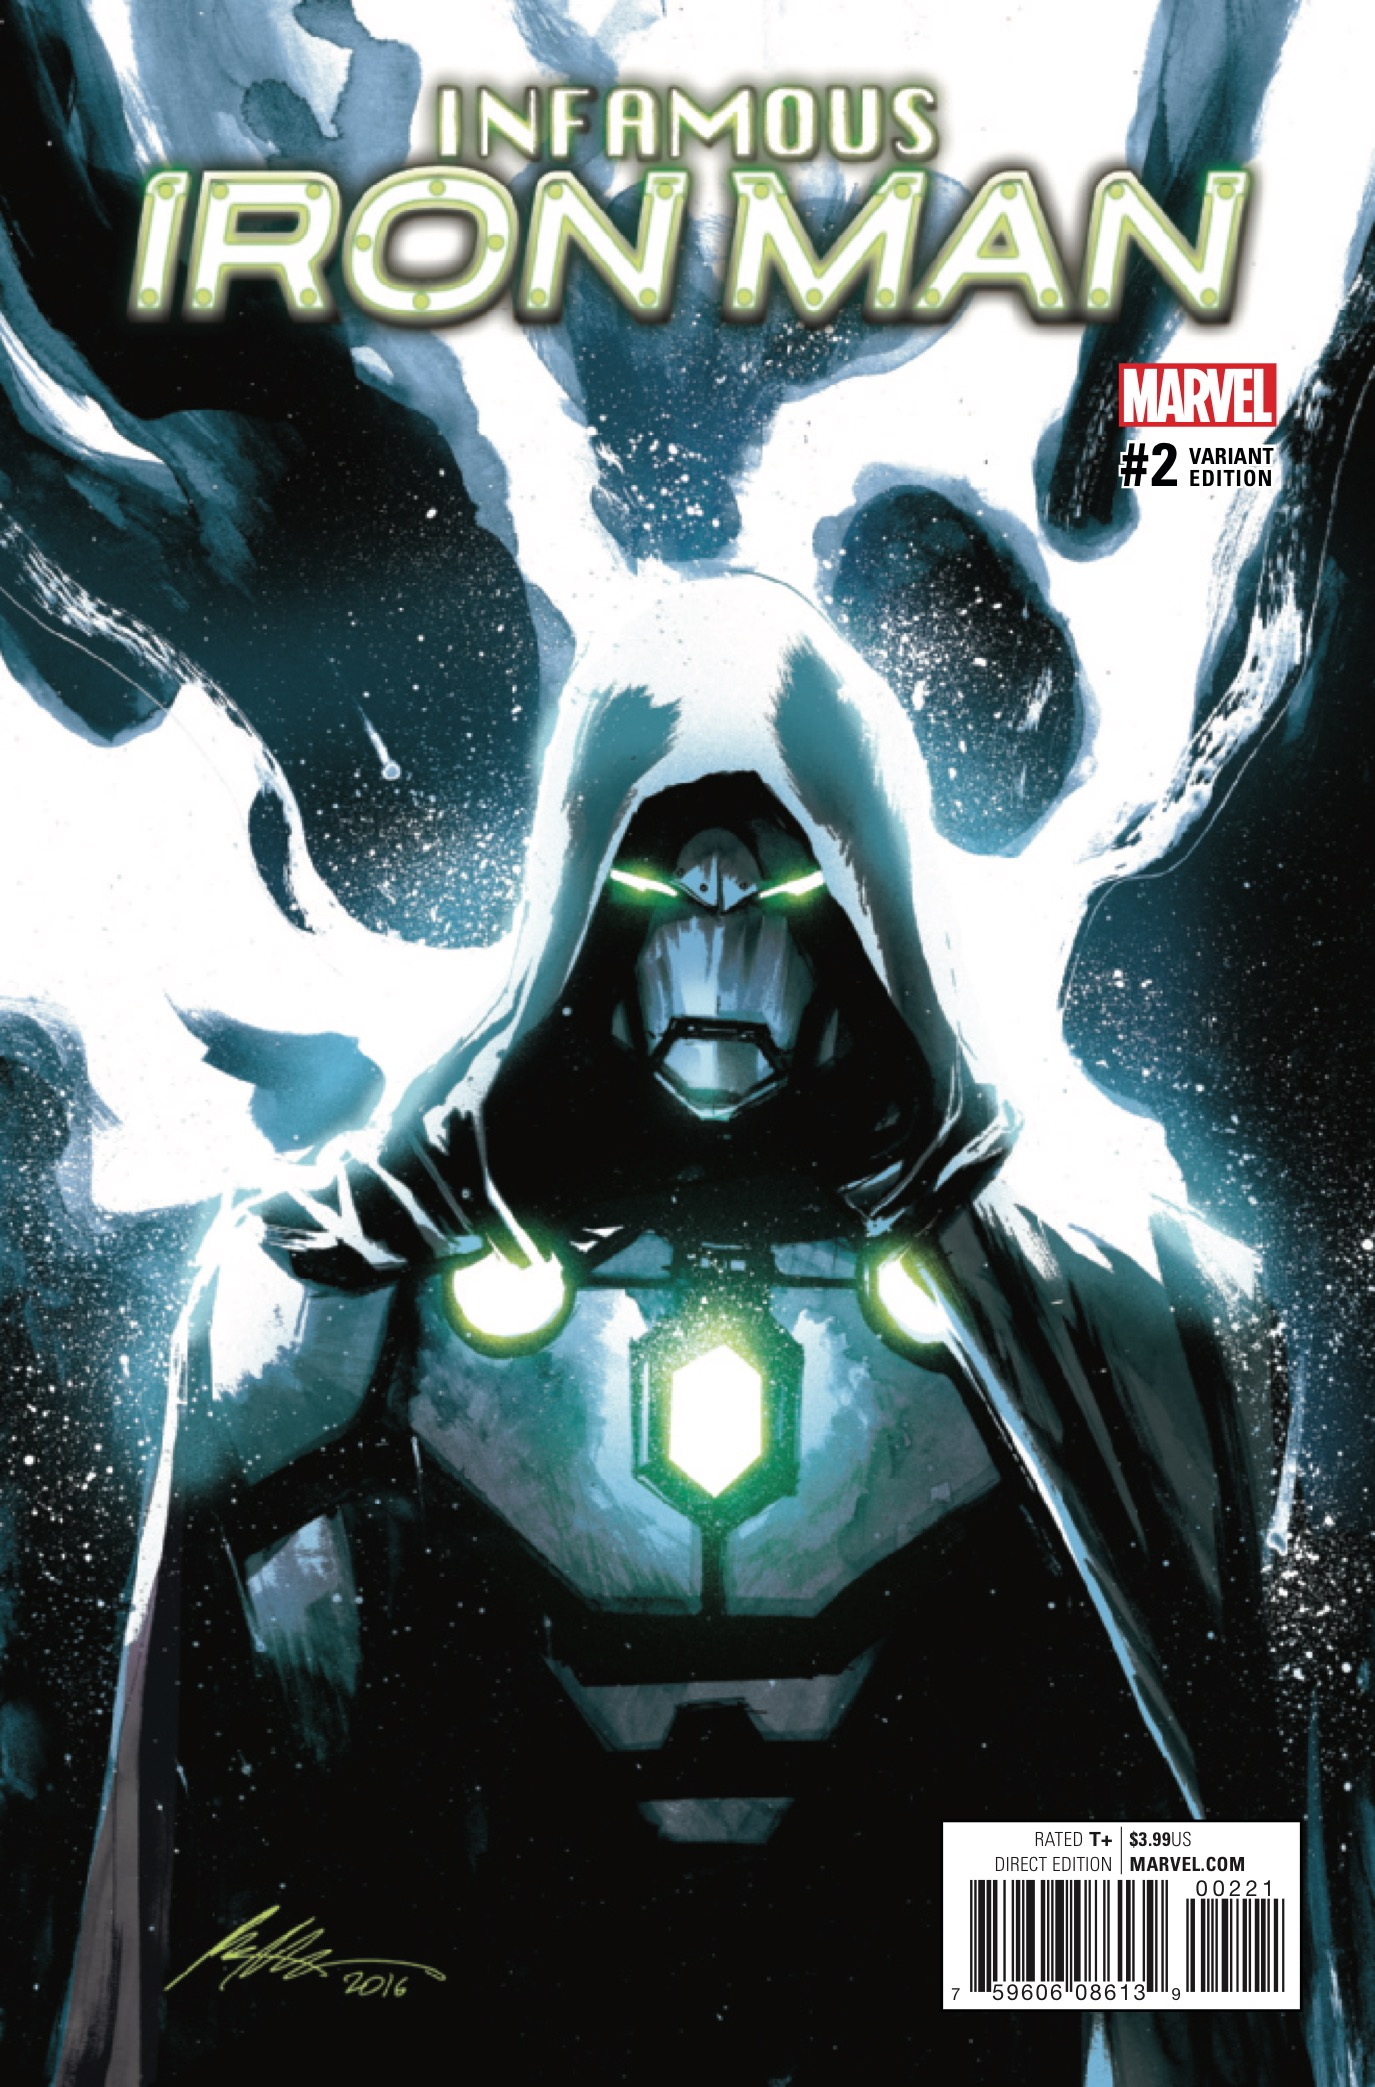 Marvel Preview: Infamous Iron Man #2